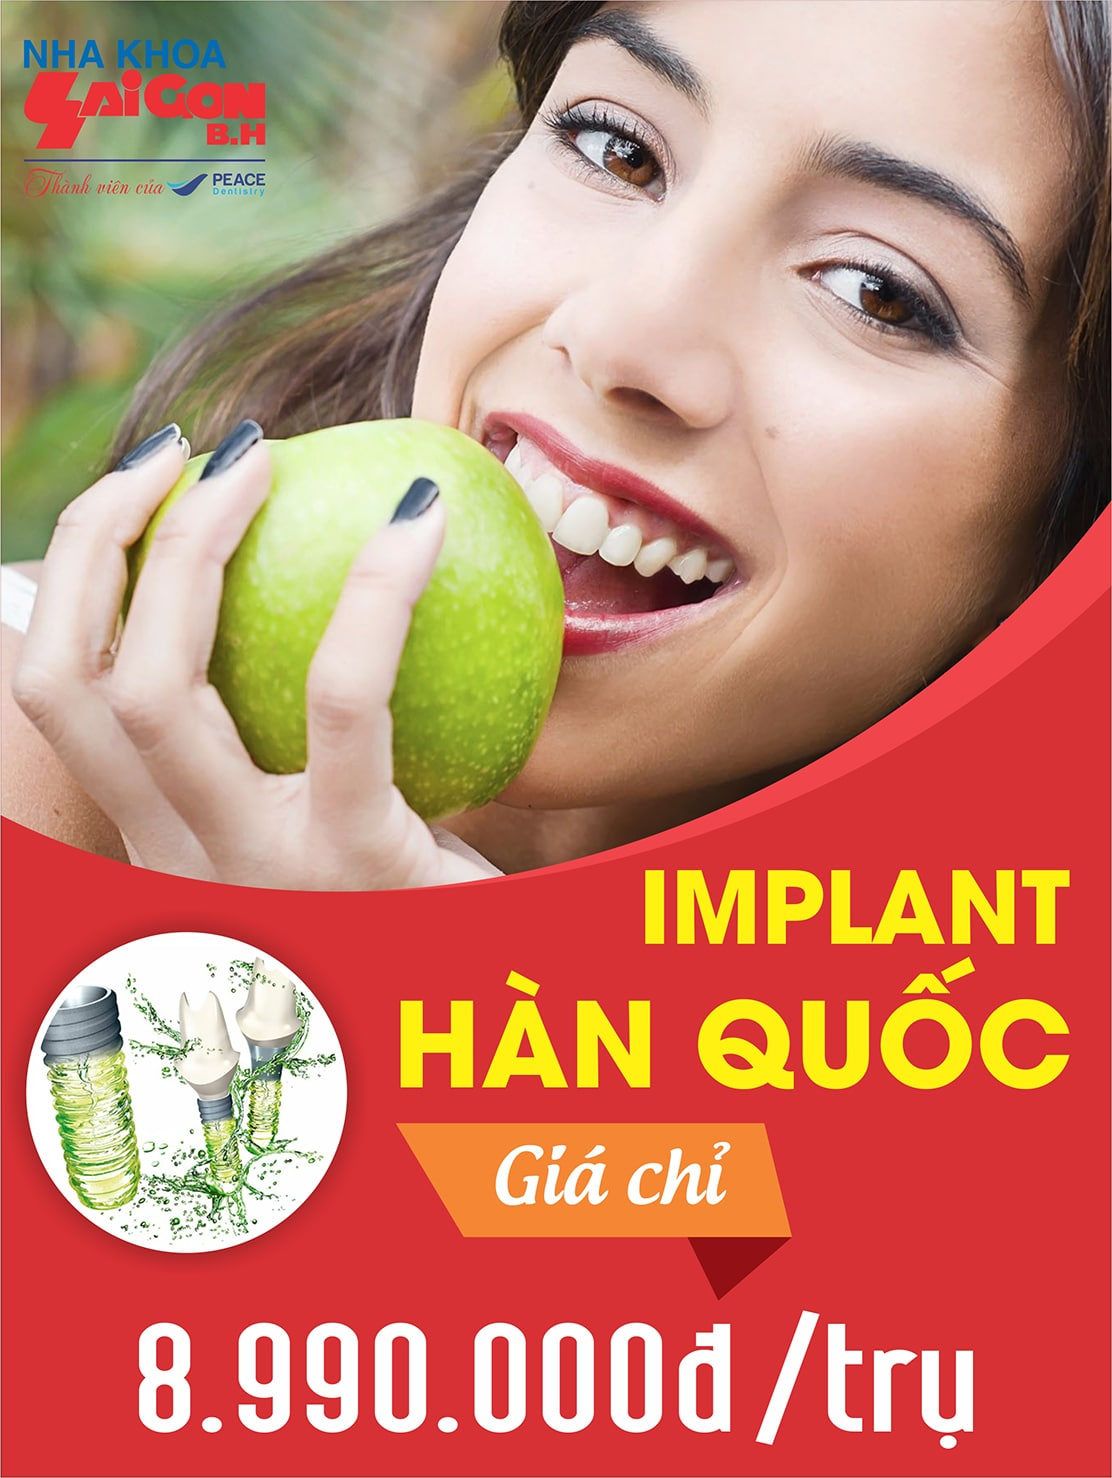 http://nhakhoasaigonbh.com/wp-content/uploads/2018/03/side_chinh_Implant_HQ.jpg